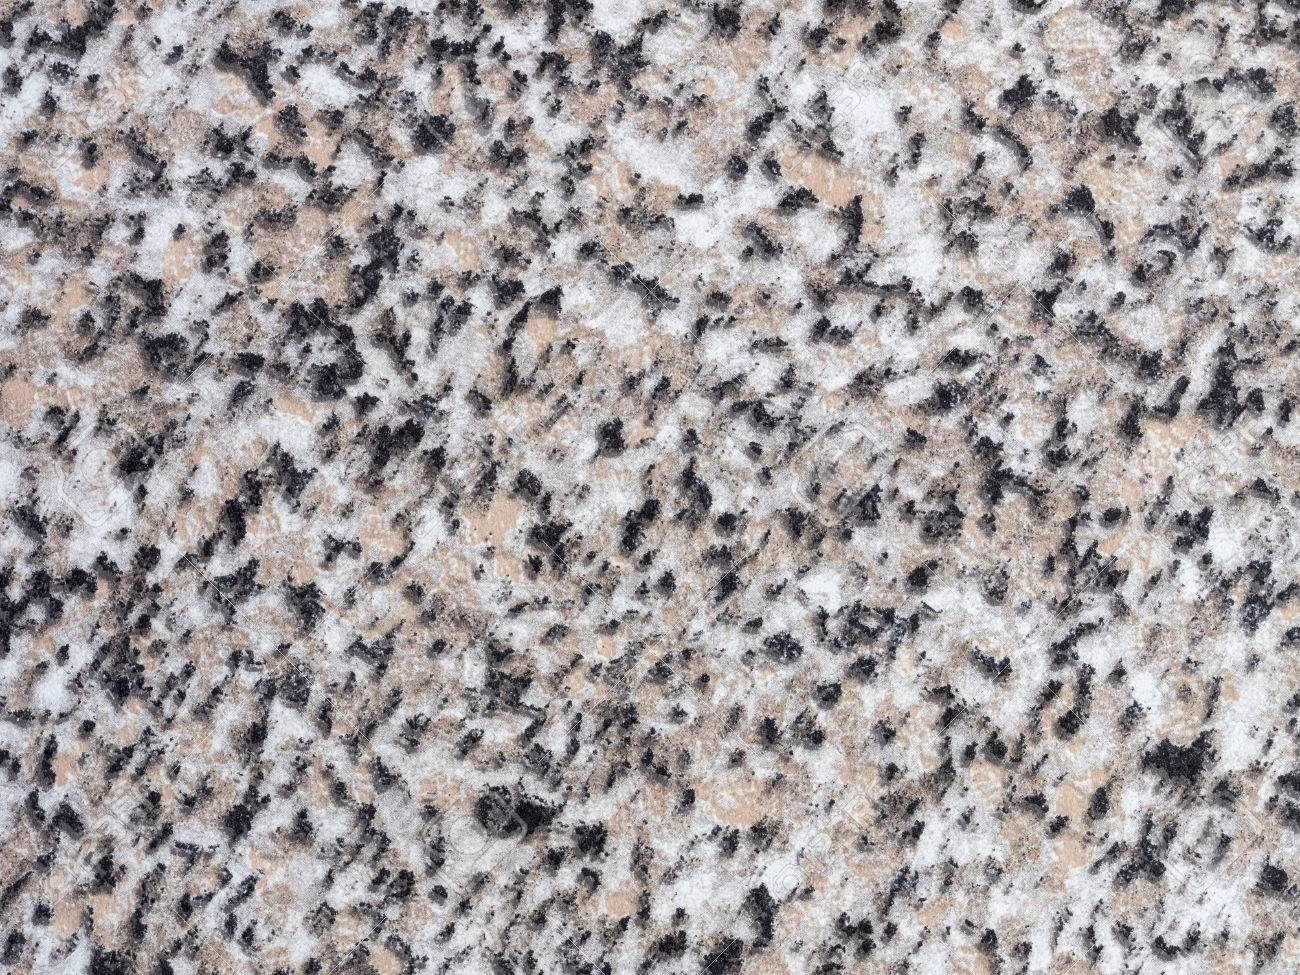 Table top texture - Stock Photo Stone Tabletop Texture Background